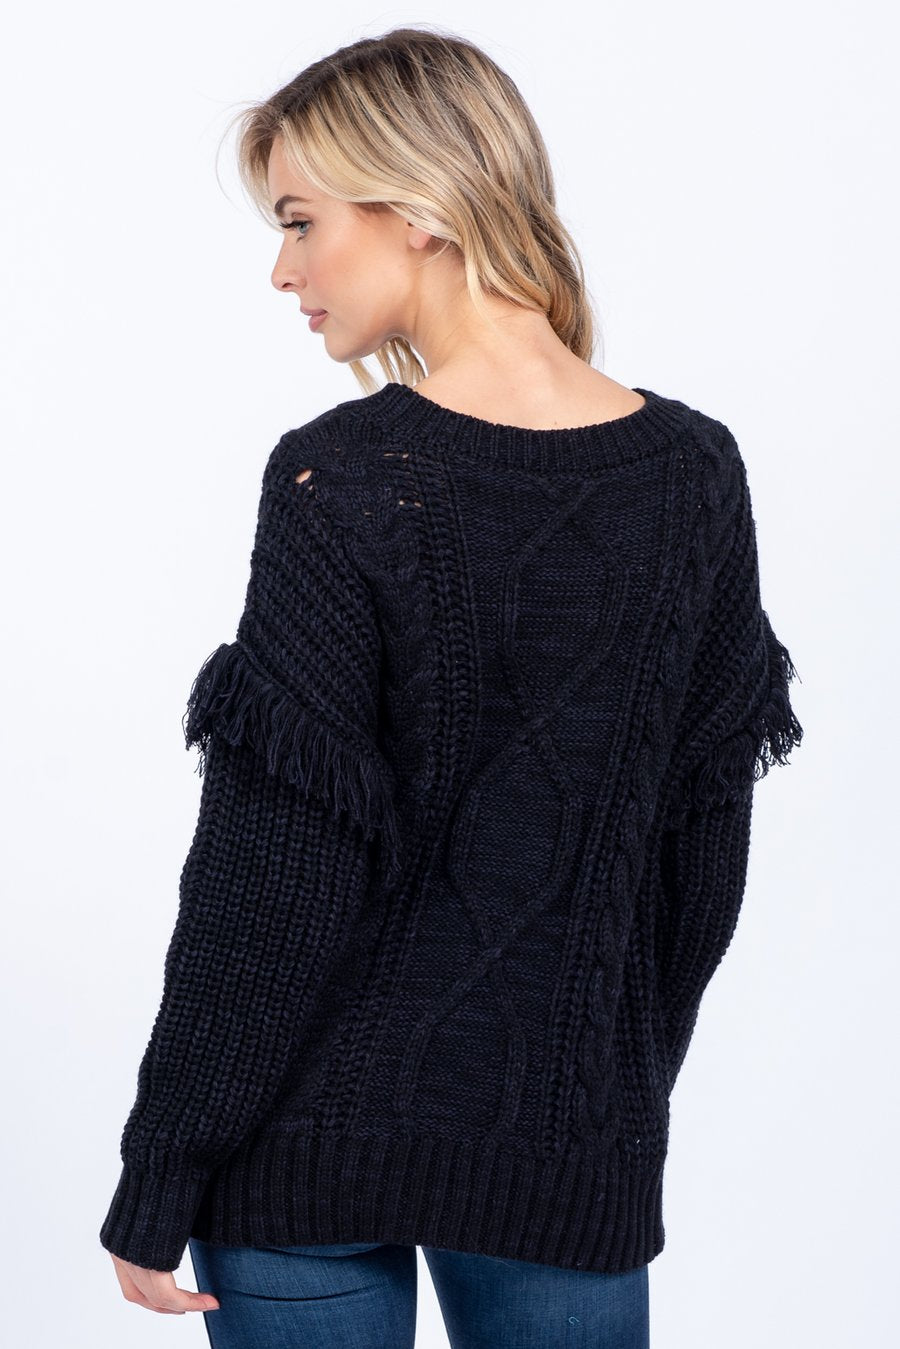 Pink Liberty Midnight Beauty Cable Knit Fringe Sweater Black